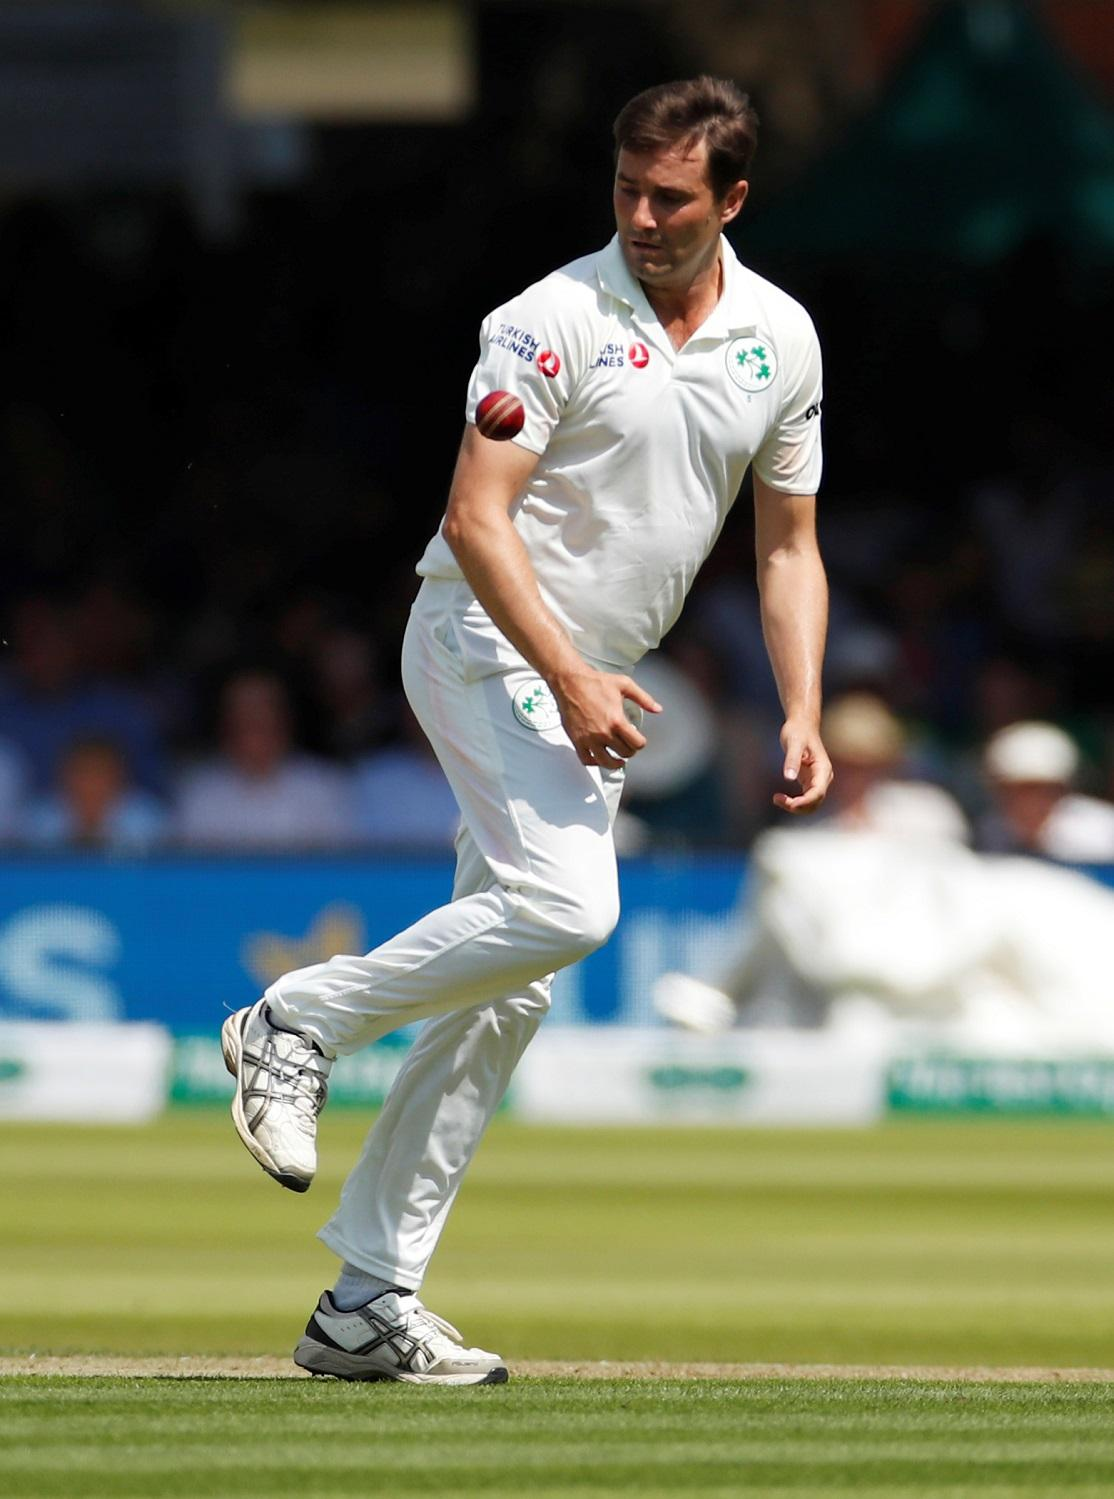 Advantage Ireland After Eventful Opening Day At Lord's